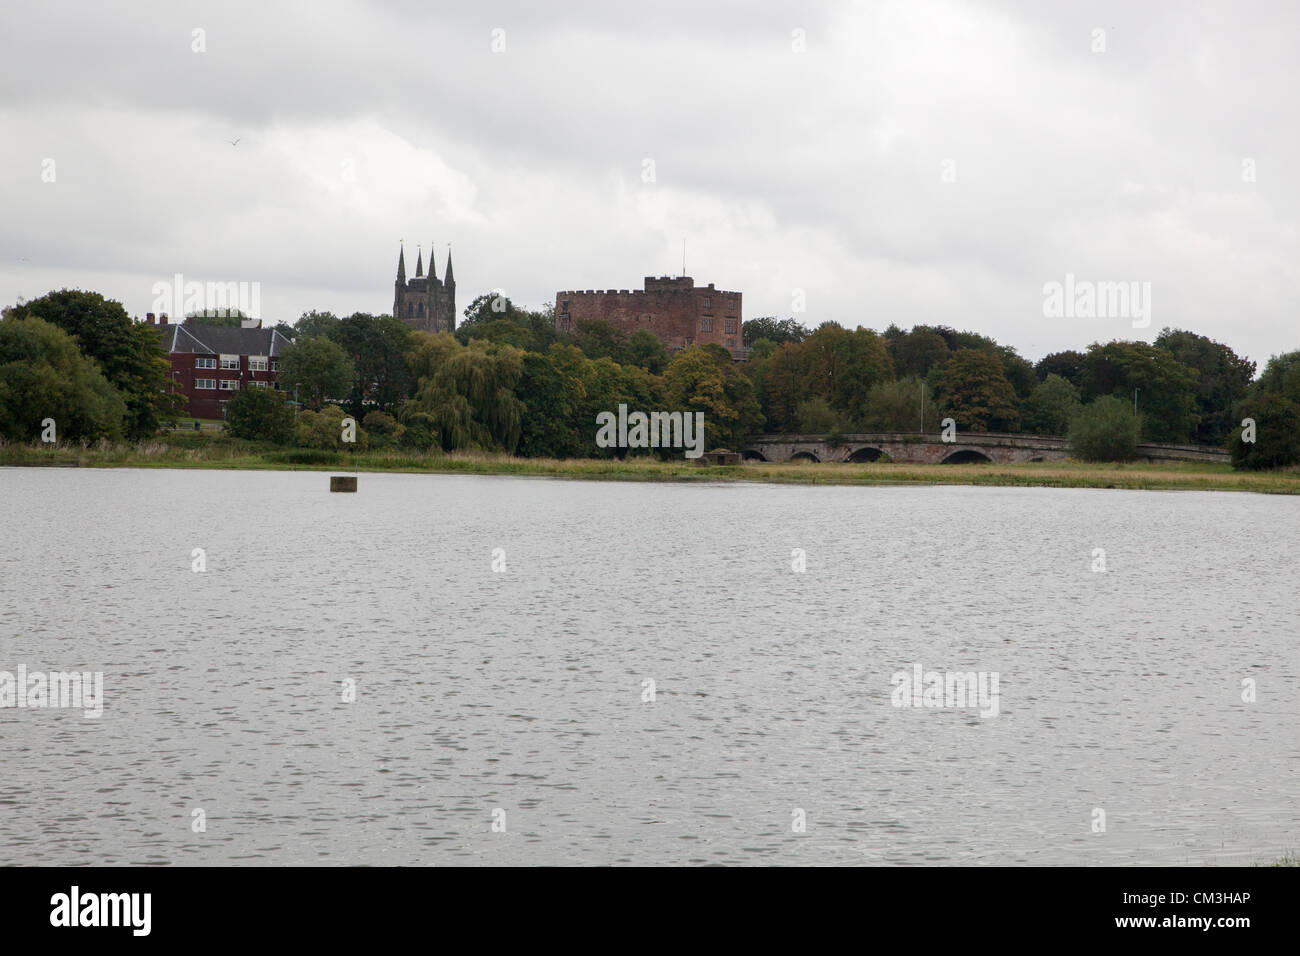 Tamworth, UK. 26th September 2012. What is usually a field lies under feet of water after the River Tame in Tamworth - Stock Image